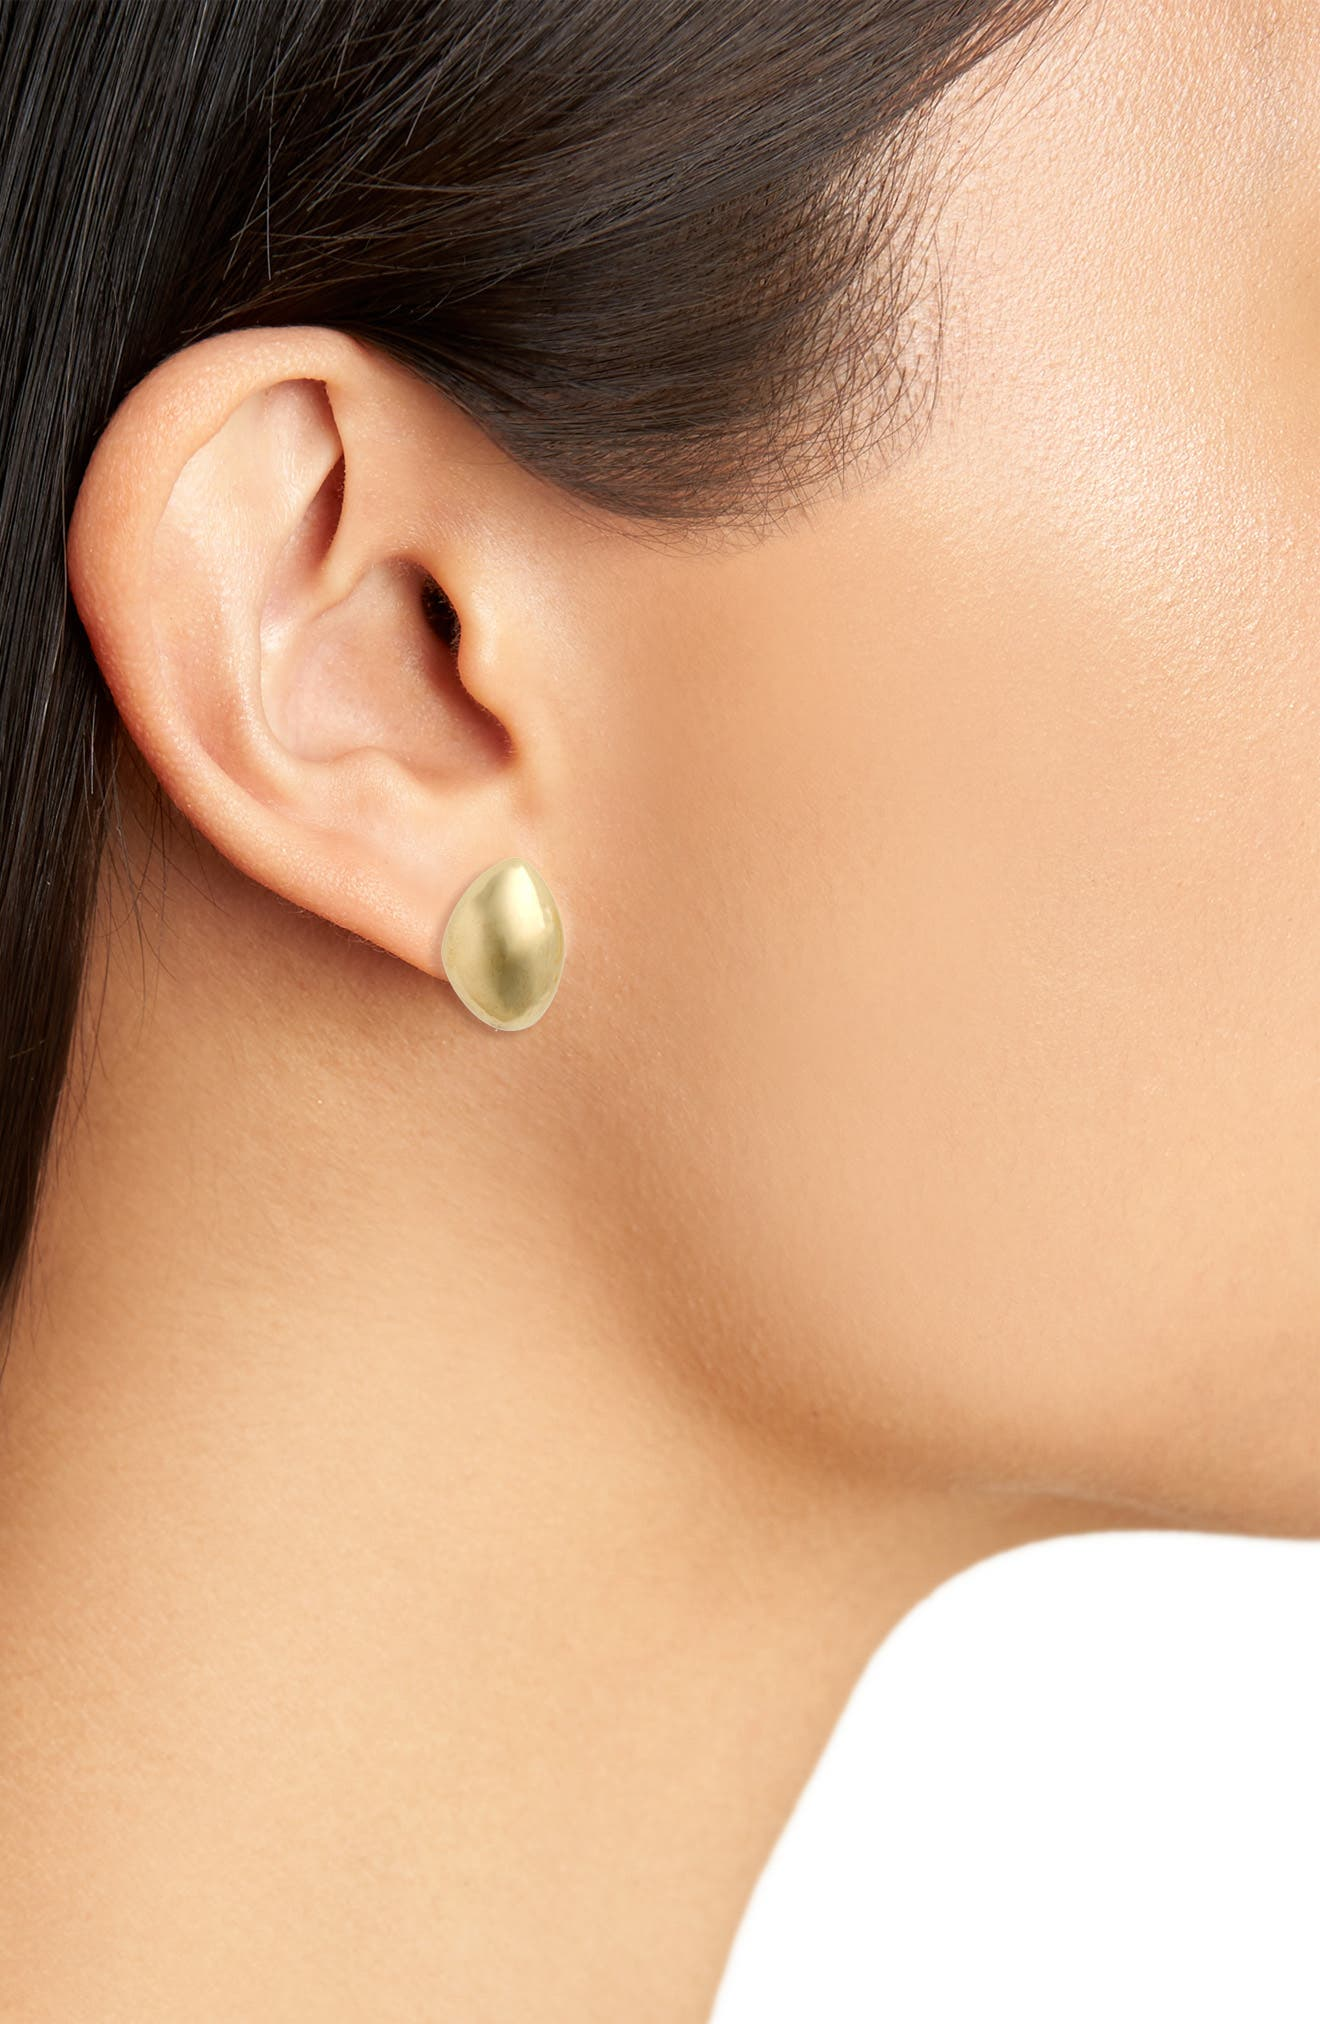 Sabi Stud Earrings,                             Alternate thumbnail 2, color,                             710